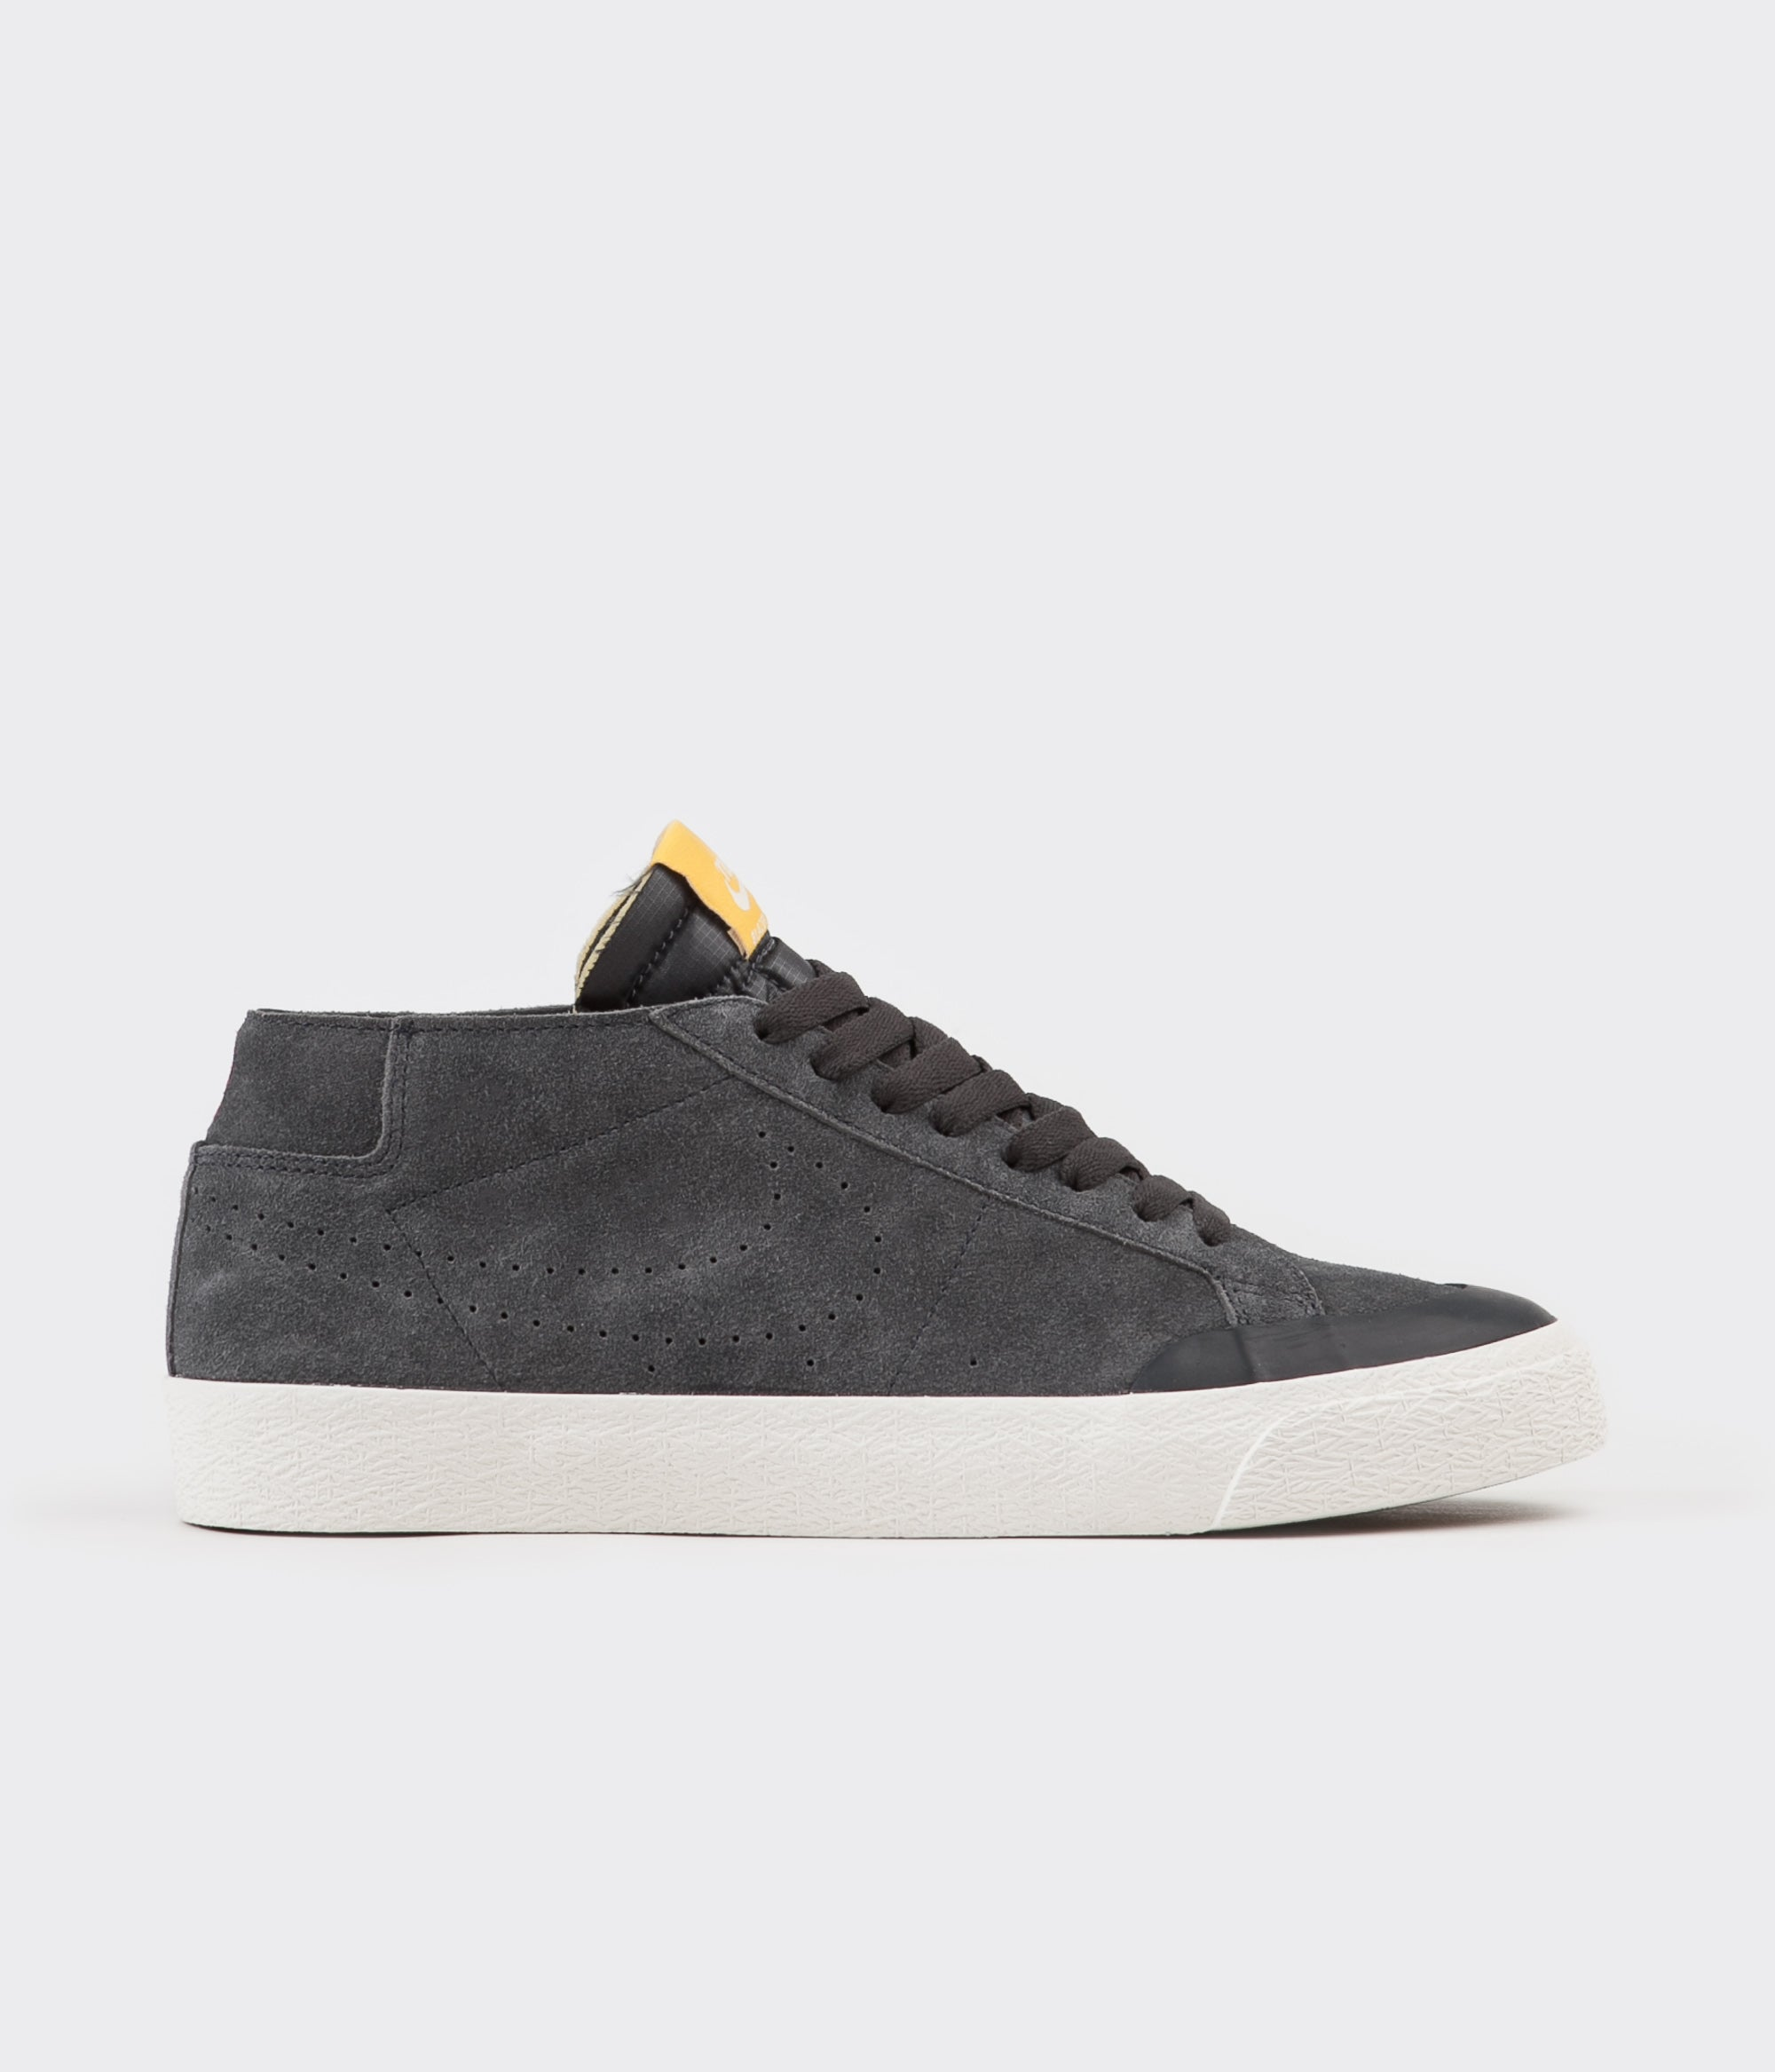 5f23501989a1 Nike SB Blazer Chukka XT Shoes - Anthracite   Anthracite - Fir ...